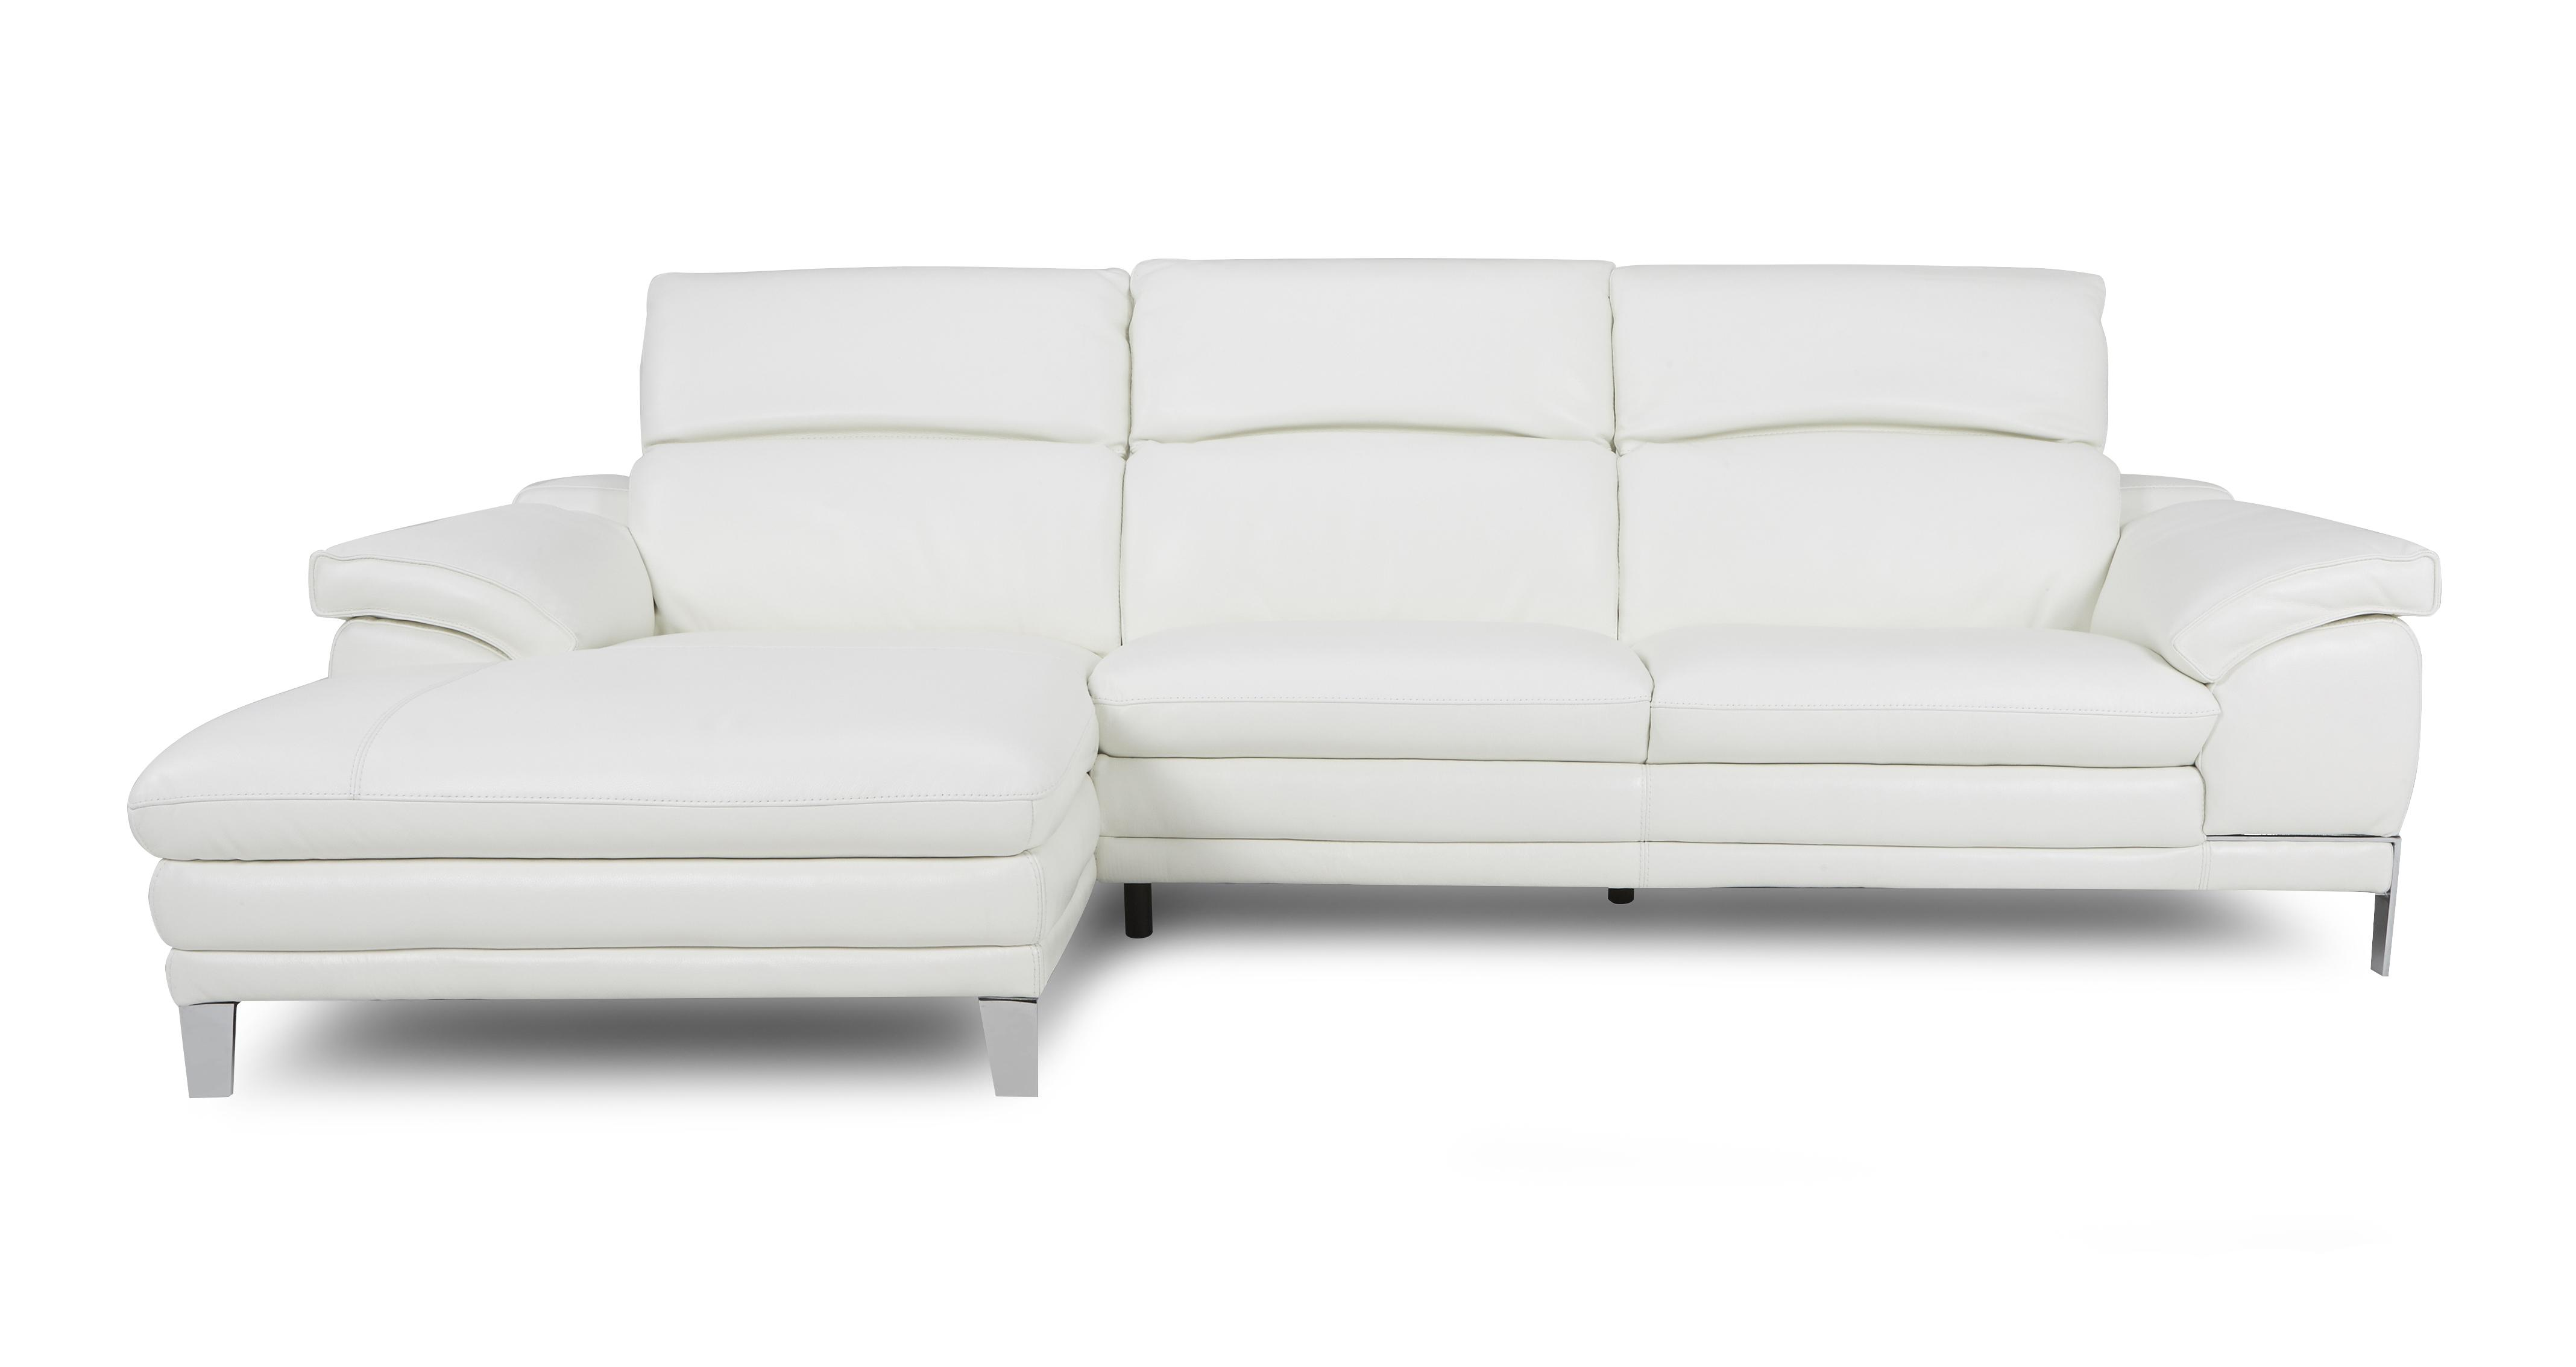 Corso option b left hand facing large chaise end sofa new for Chaise end sofas